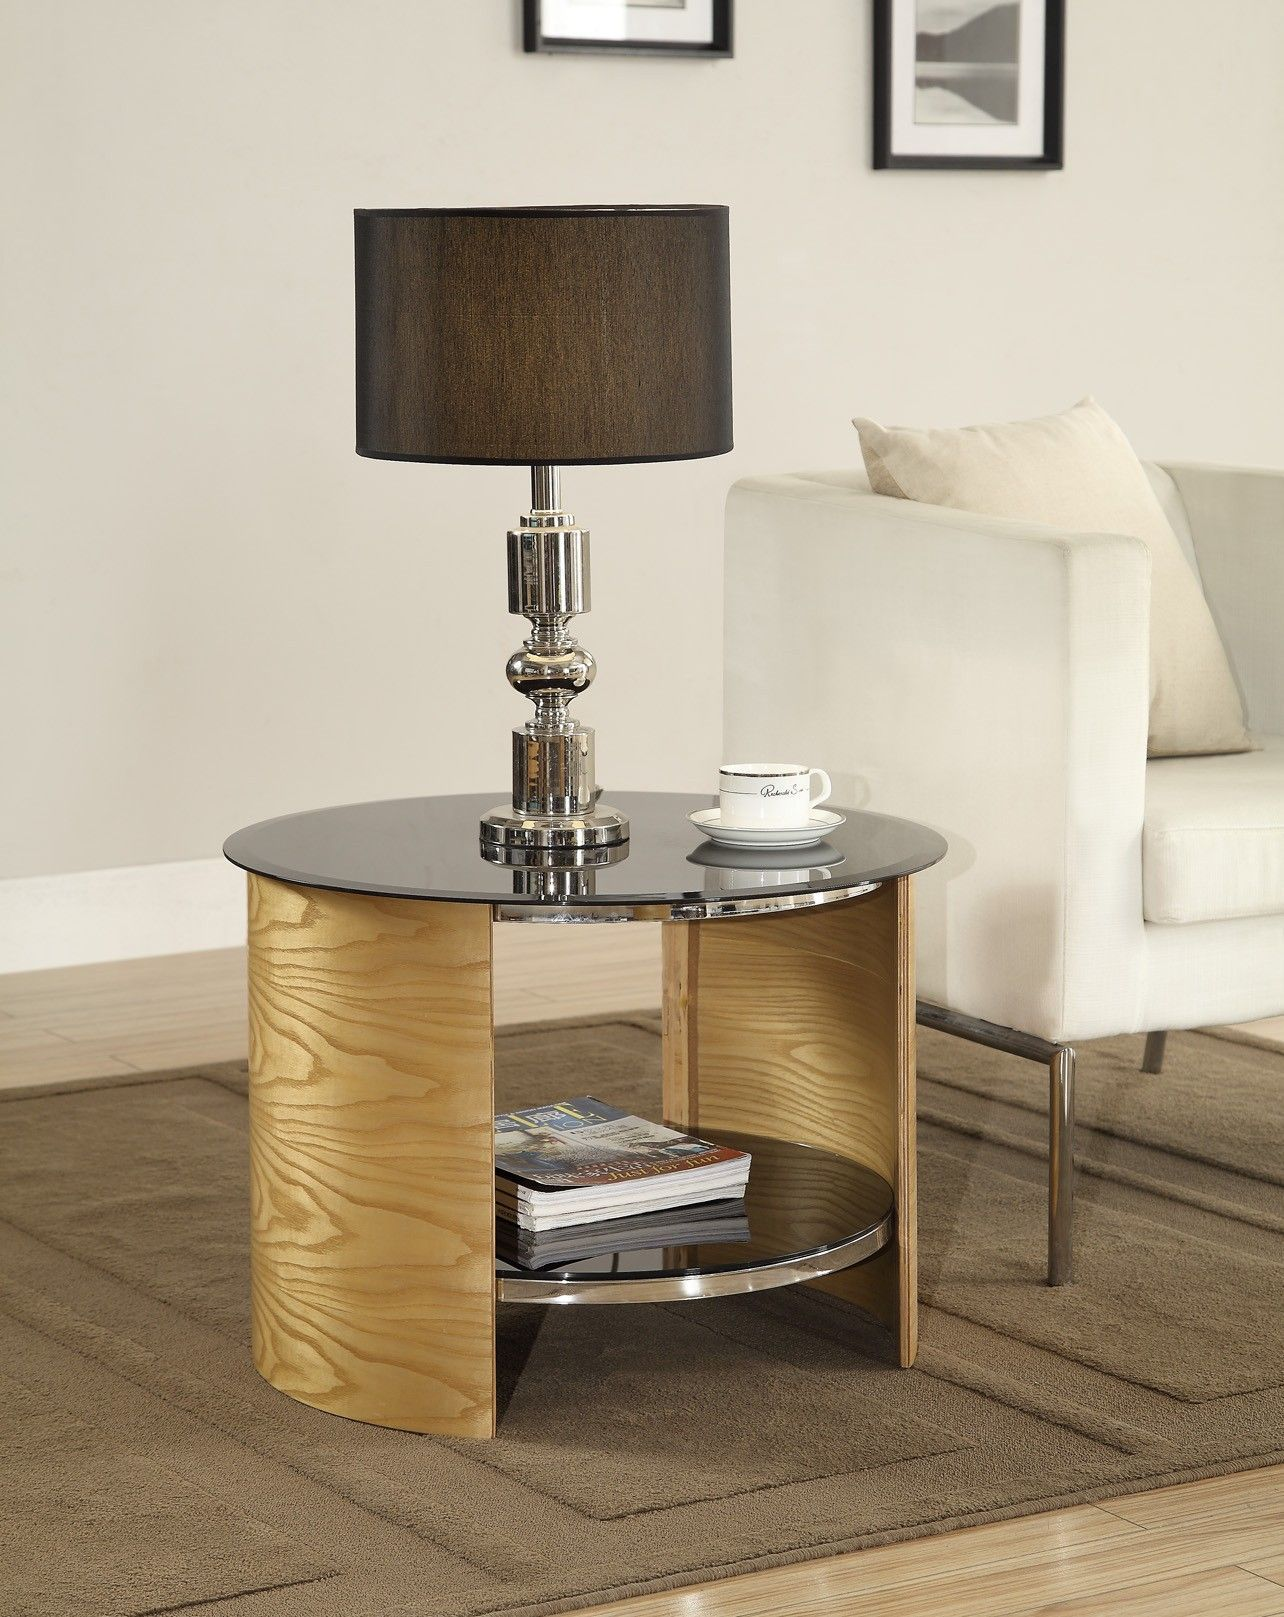 There Are Different Types Of Side Tables But Only One Fits Your Decoration Get Inspired By This Idea Cutelamps Side Table Lamps Oak Lamp Side Table [ 1617 x 1284 Pixel ]